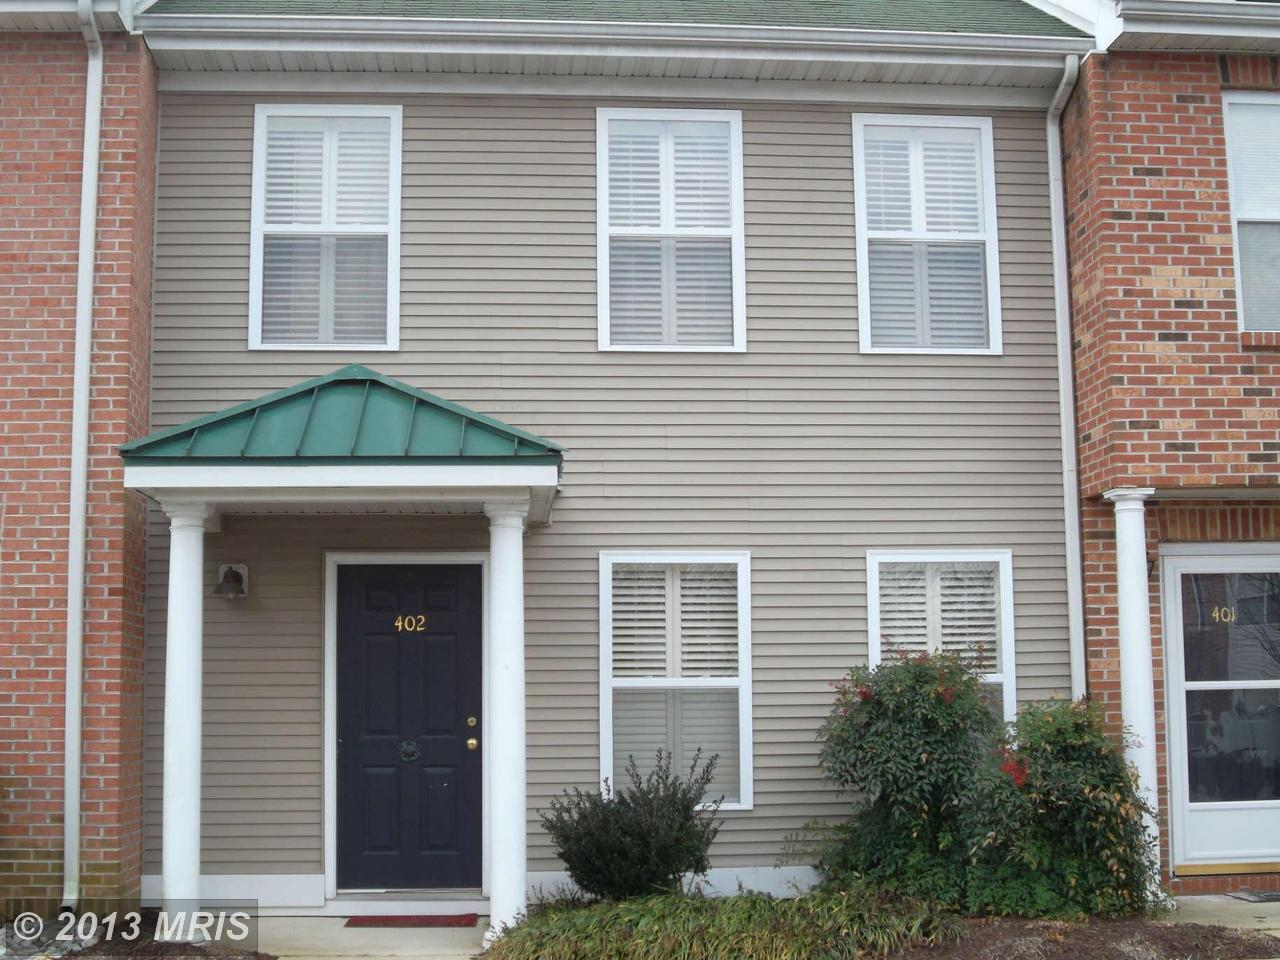 3 bedroom homes for sale in easton md easton mls